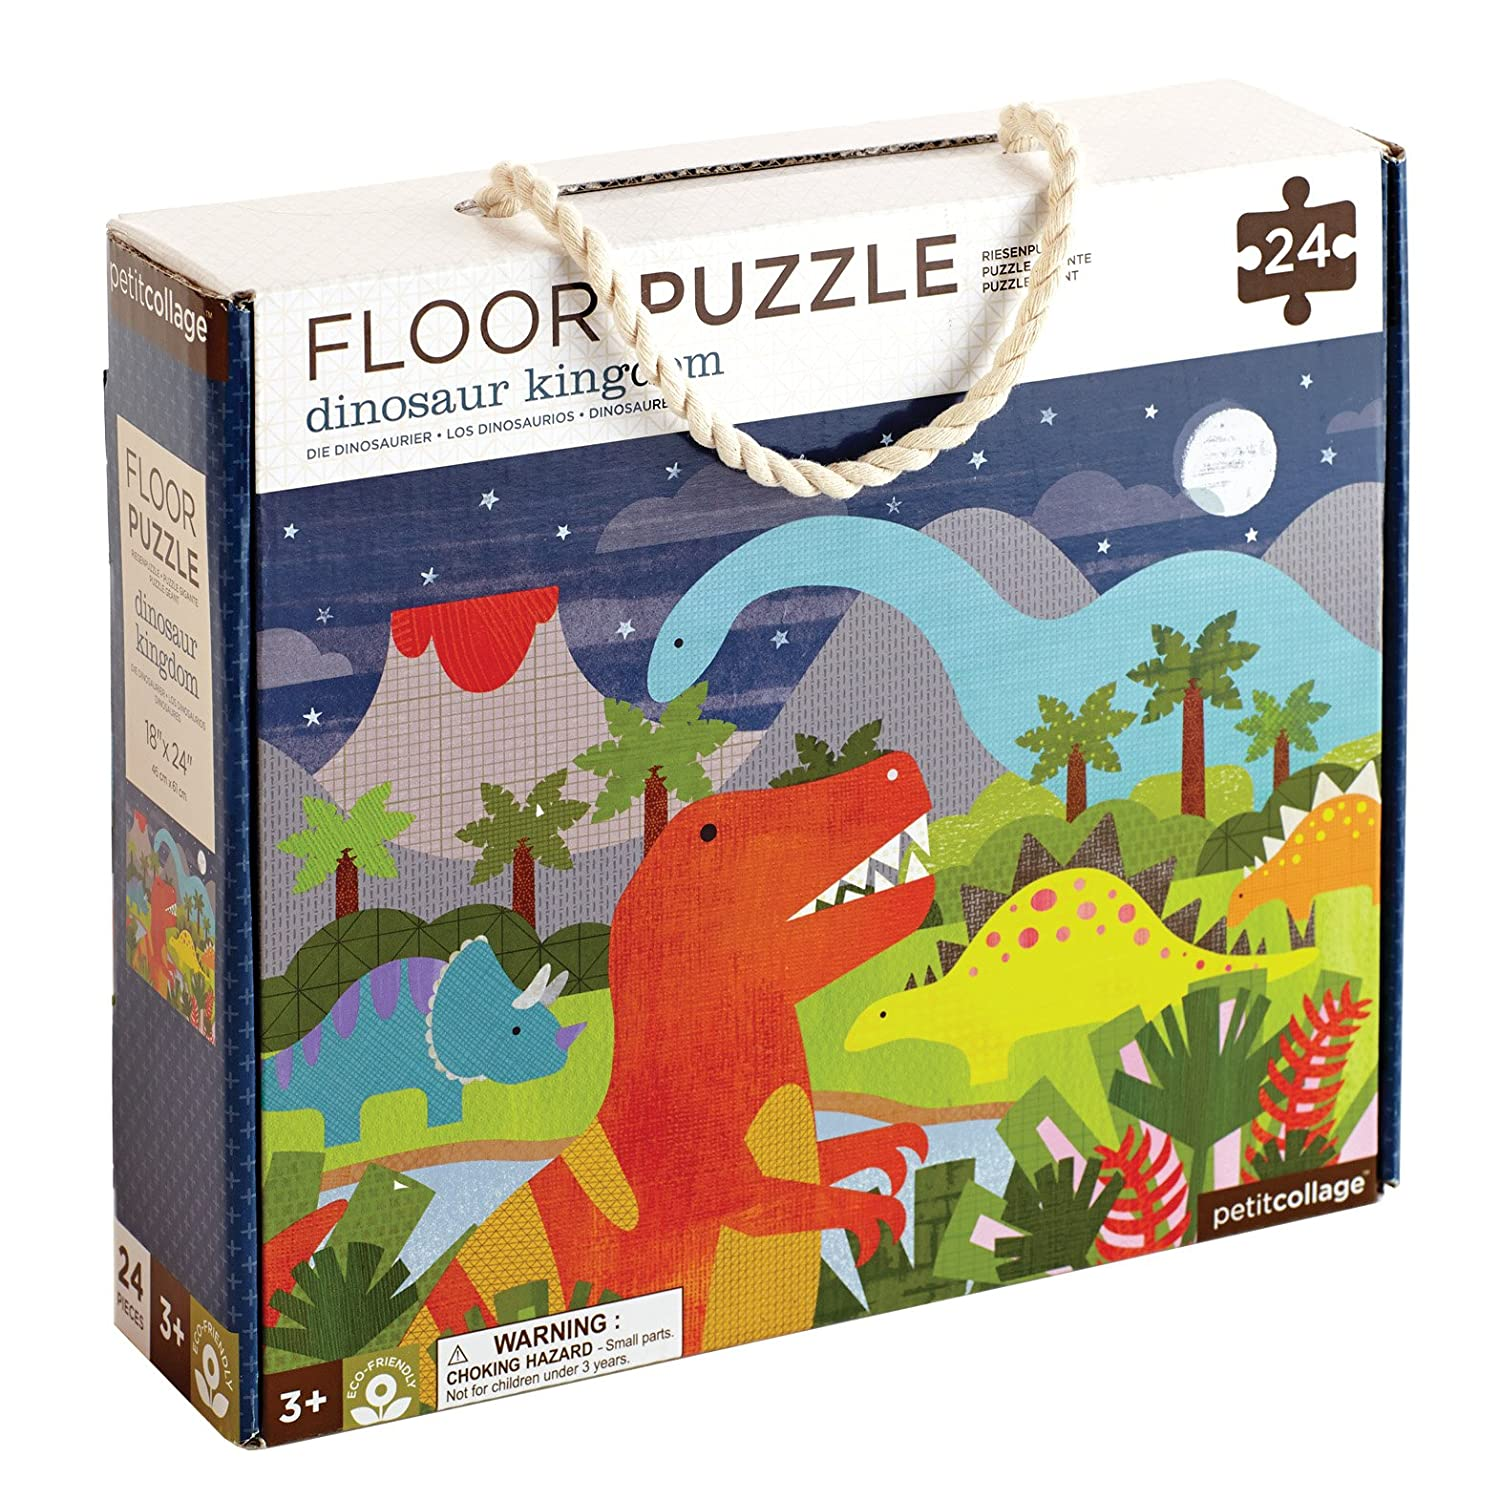 Top 12 Best Puzzles for Toddlers (2020 Reviews & Buying Guide) 6